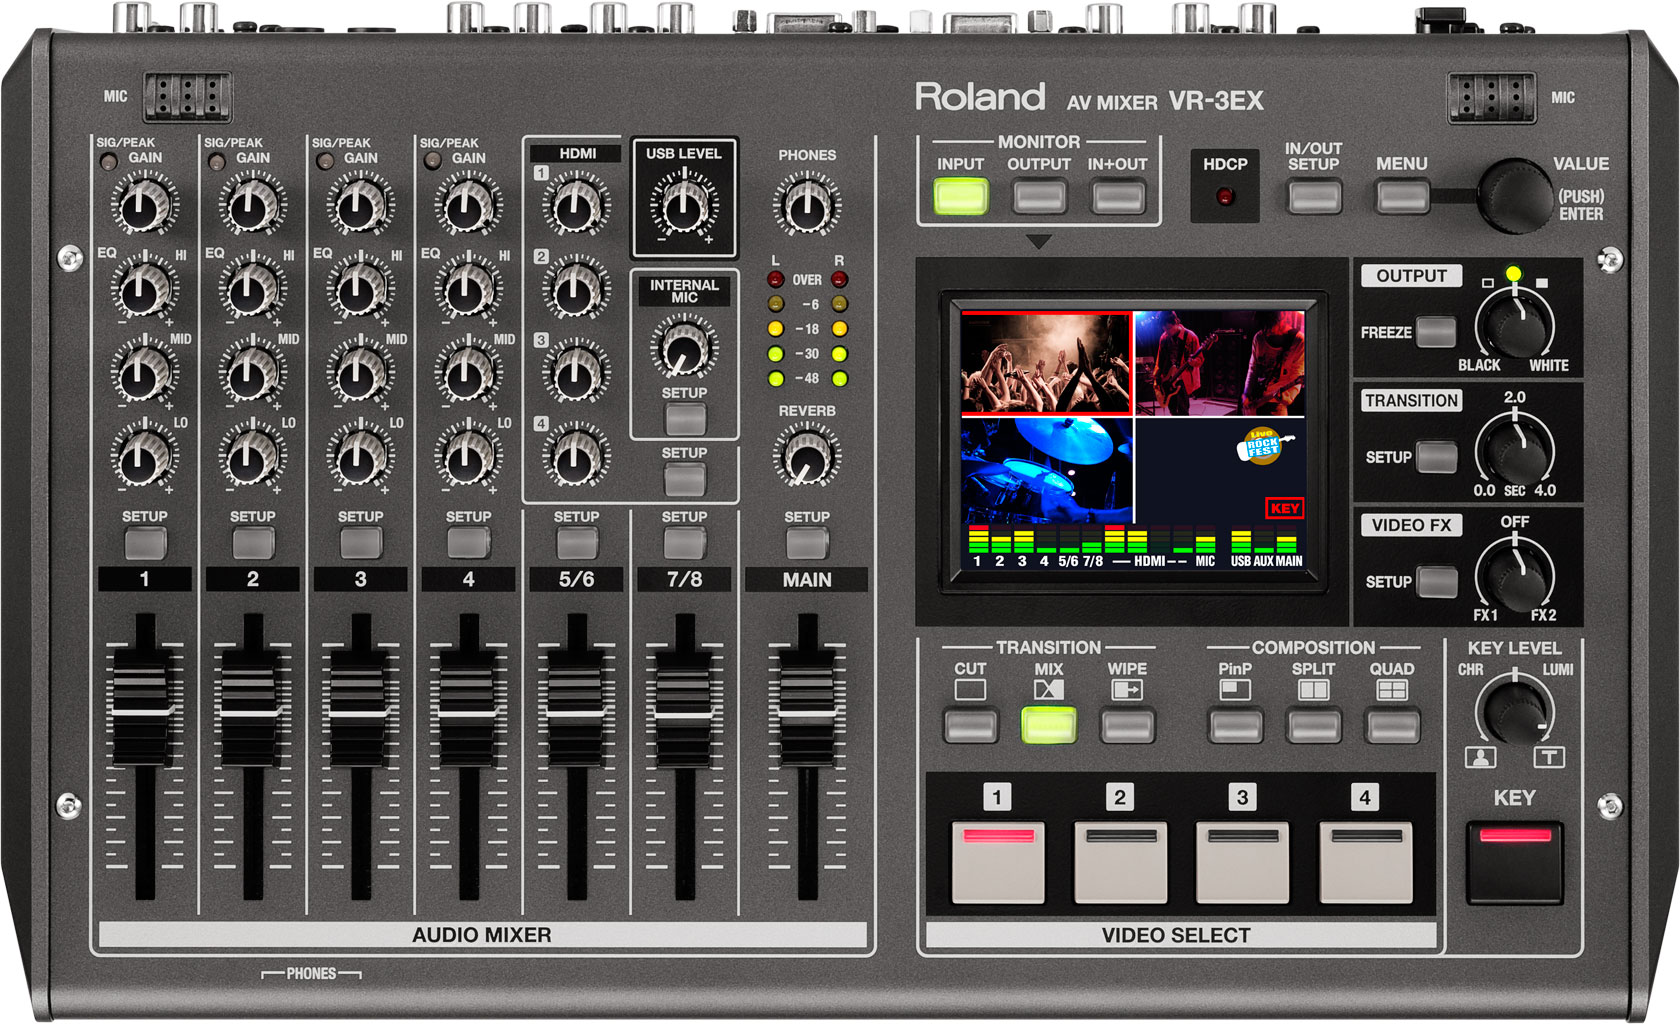 Roland Pro A V Vr 3ex Av Mixer Dictionary Of Electronic And Engineering Terms Audio Circuit